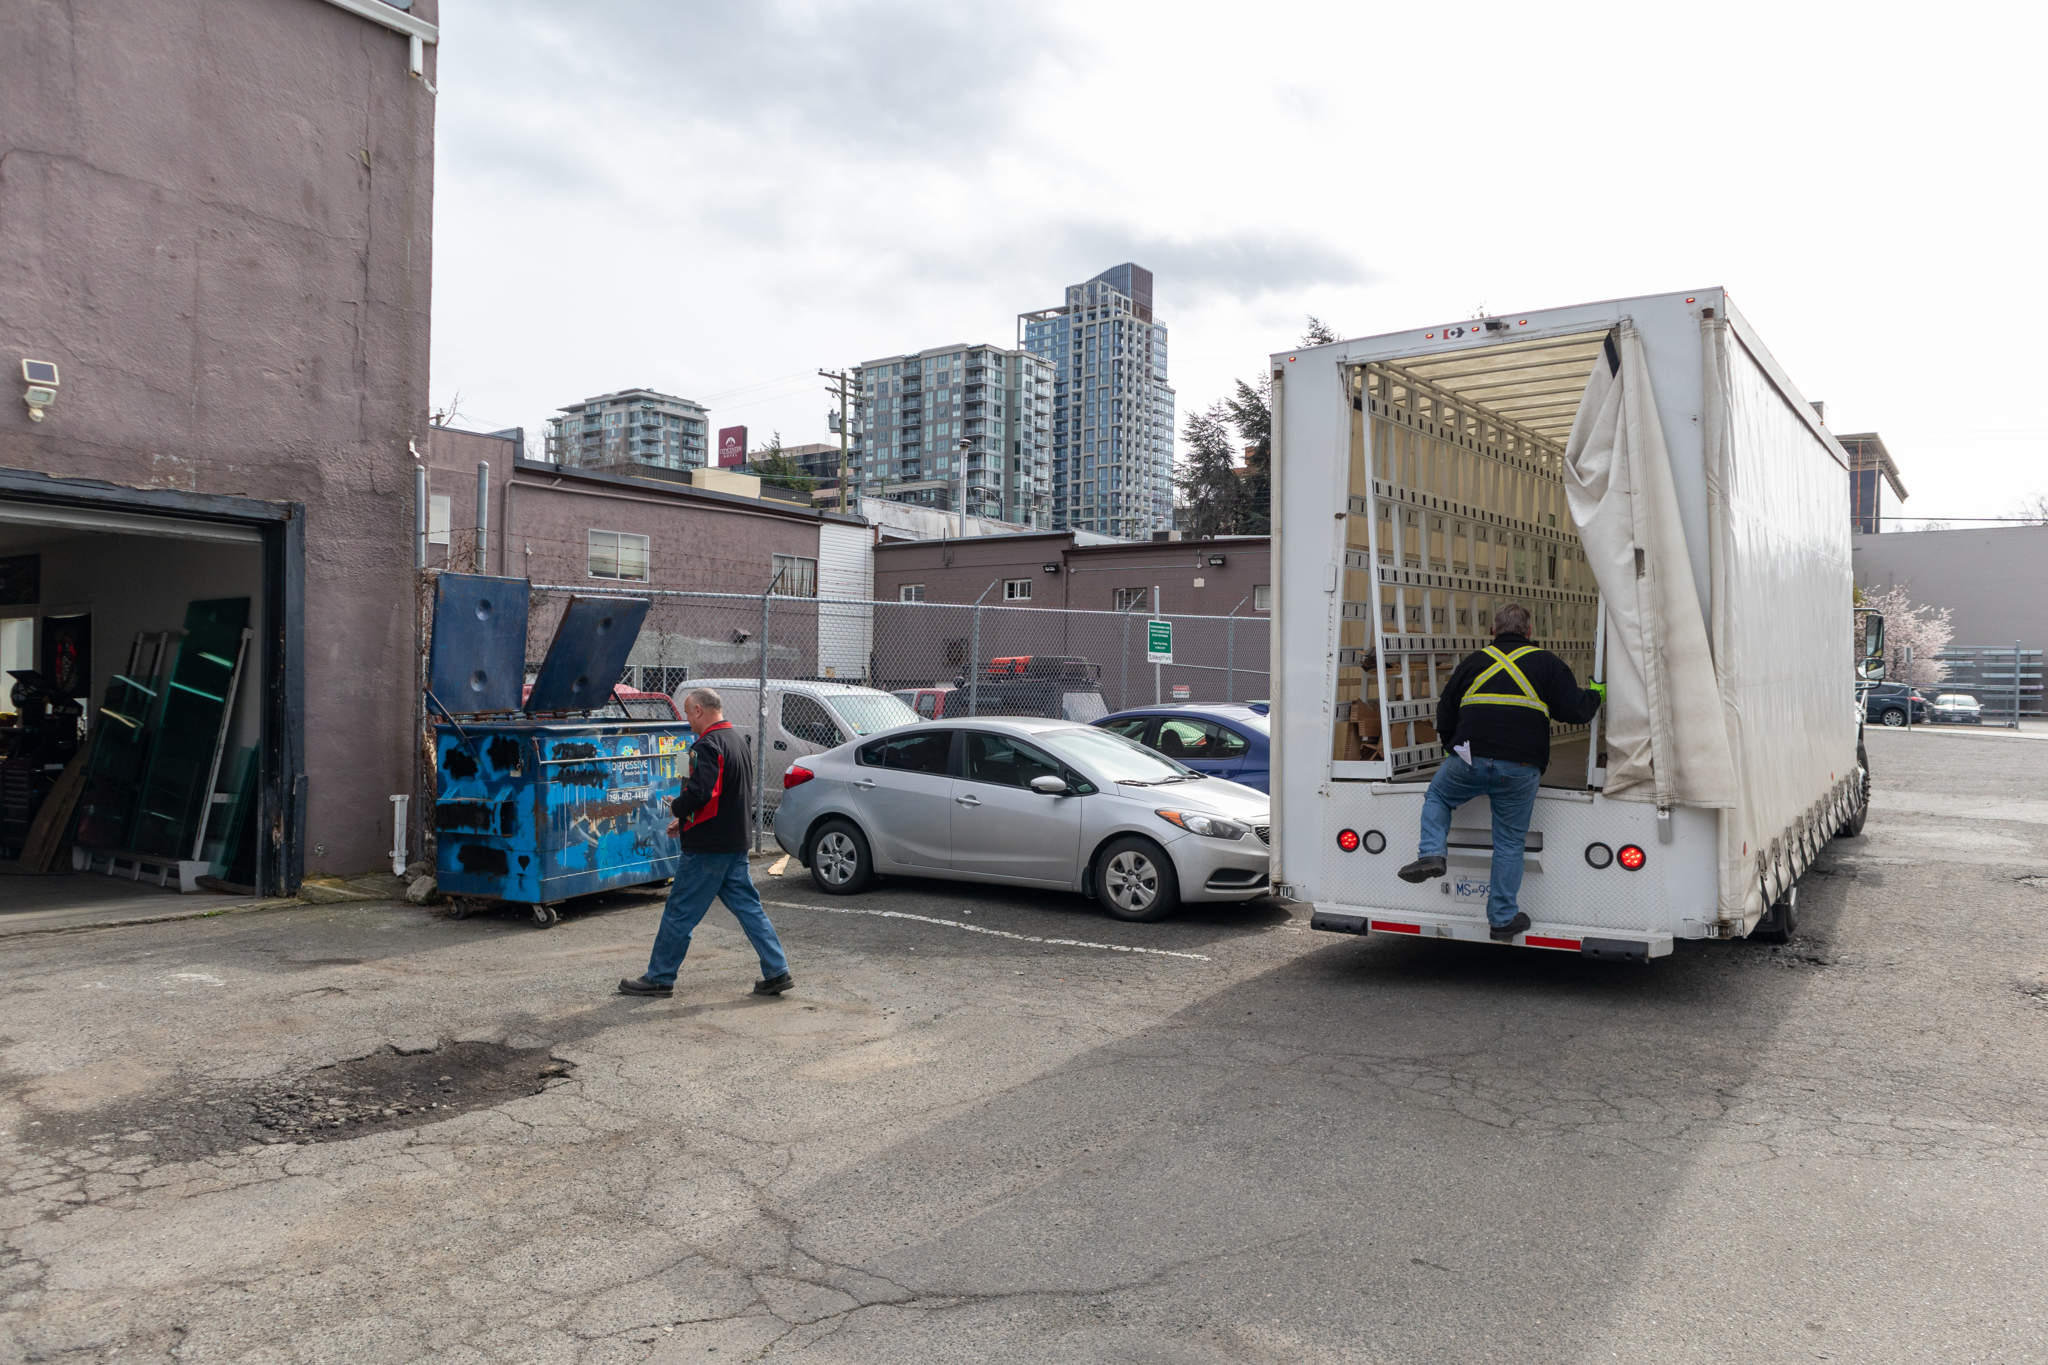 Capital Auto Glass & Upholstery Ltd in Victoria: Capital Auto Glass - Downtown Victoria (Pembroke) Glass Delivery